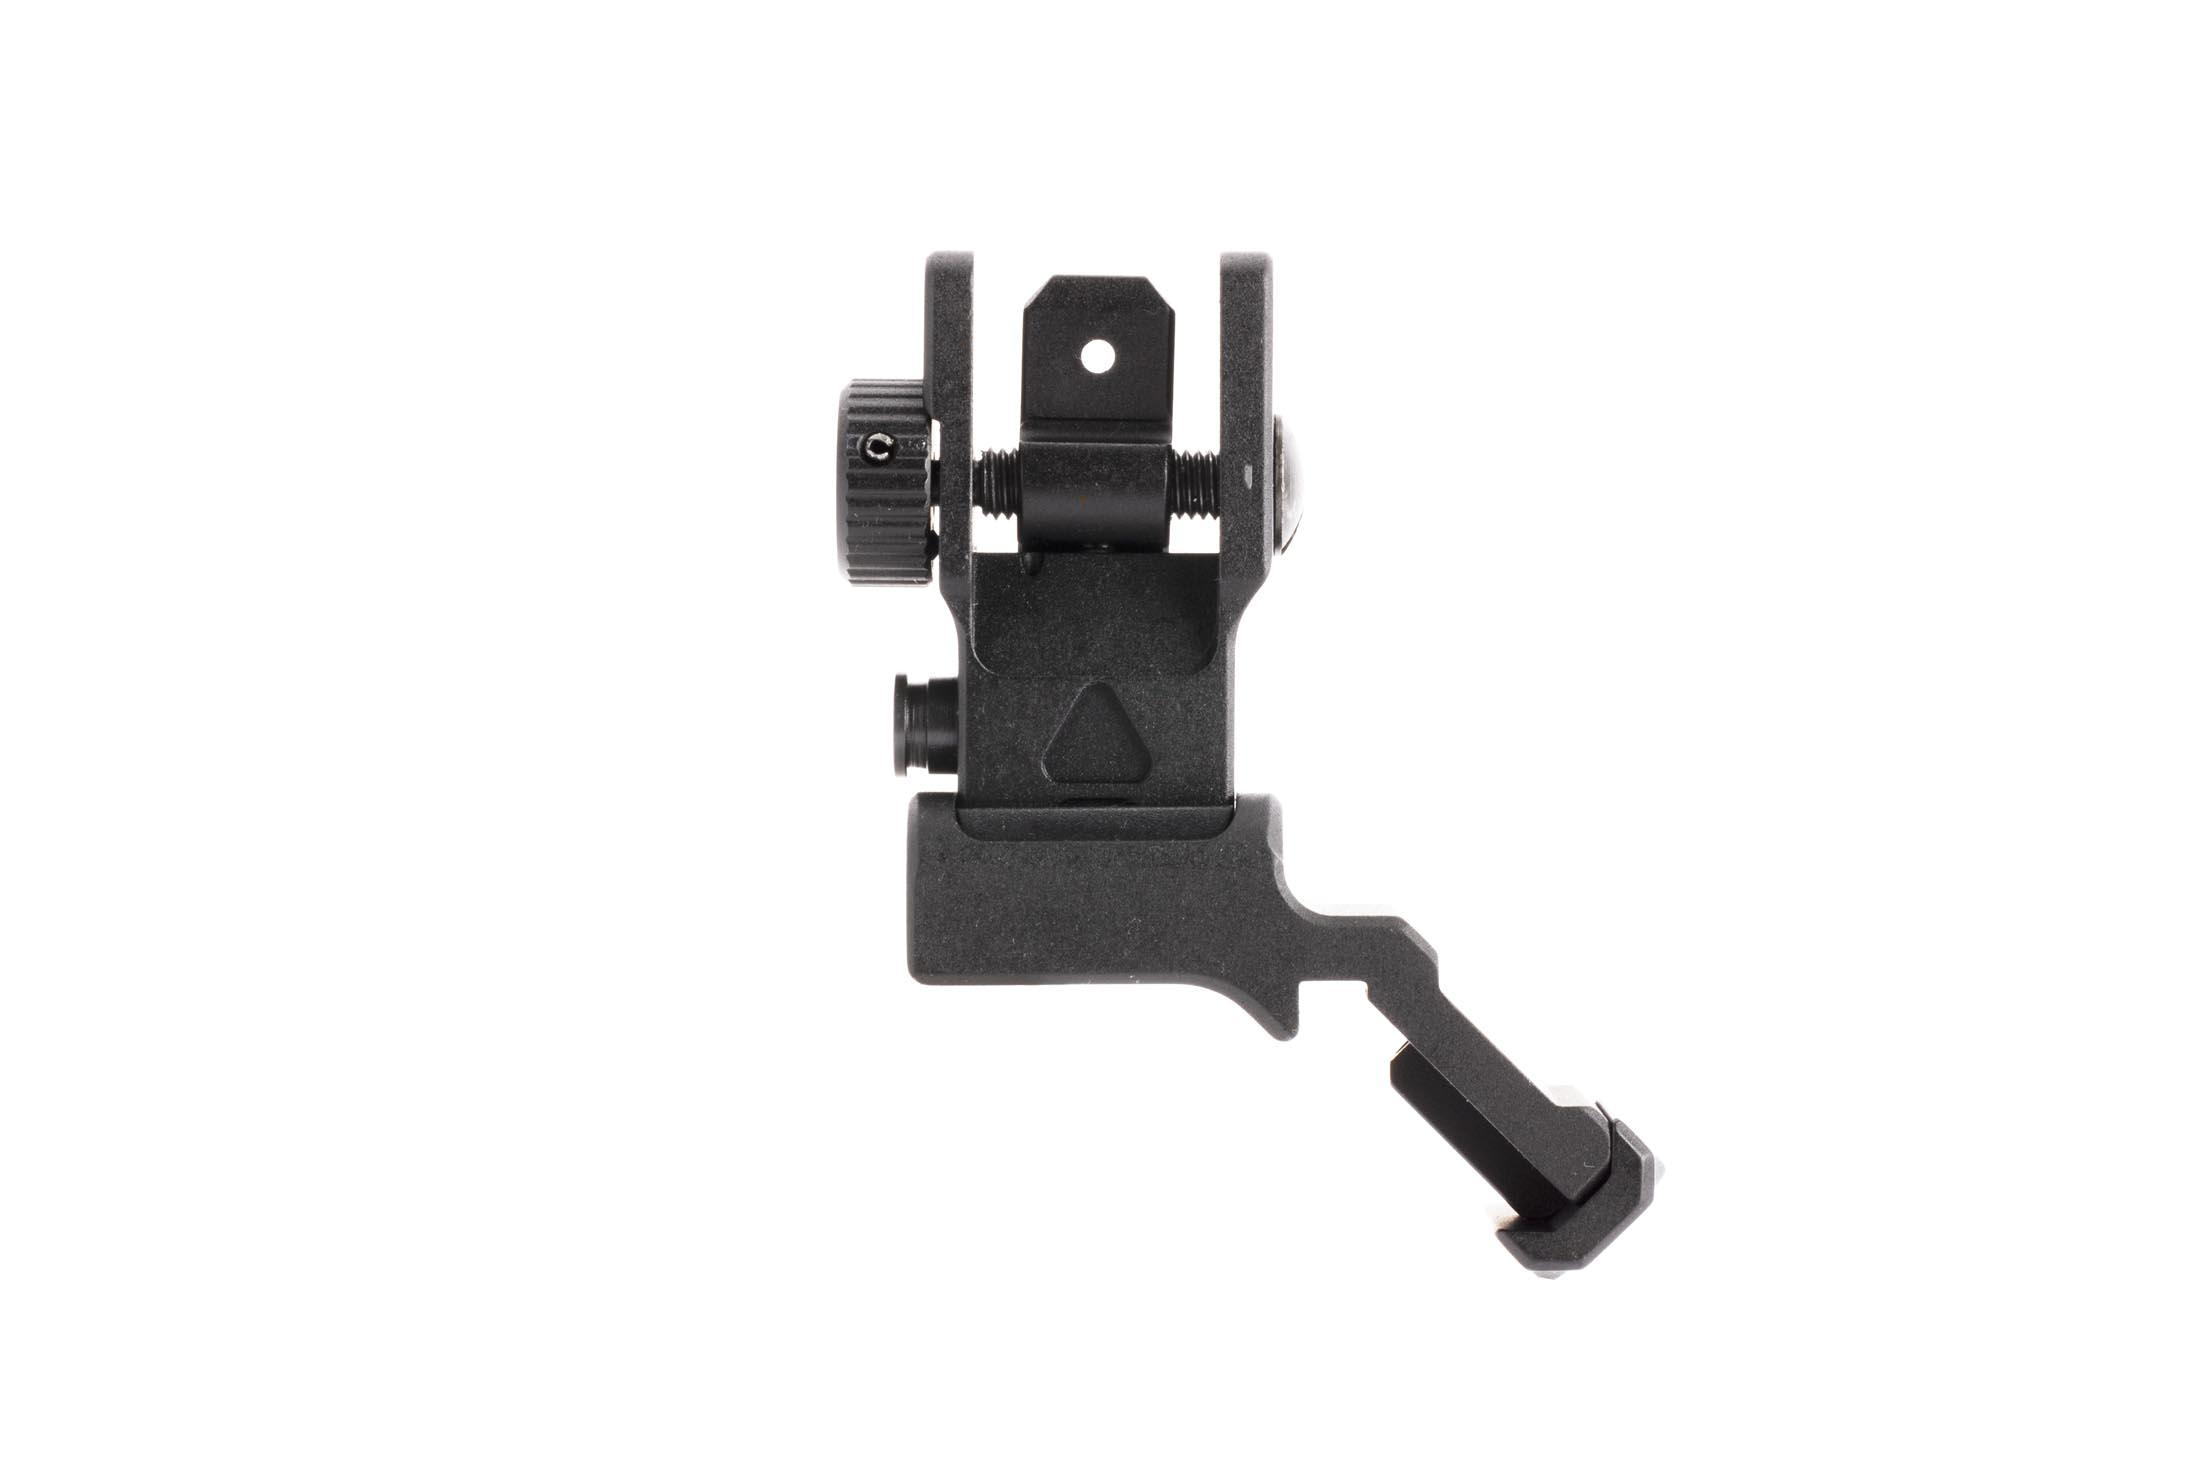 Leapers UTG 45-degree offset ACCU-SYNC rear sight easily adjust windage with a thumb wheel for fast zeroing